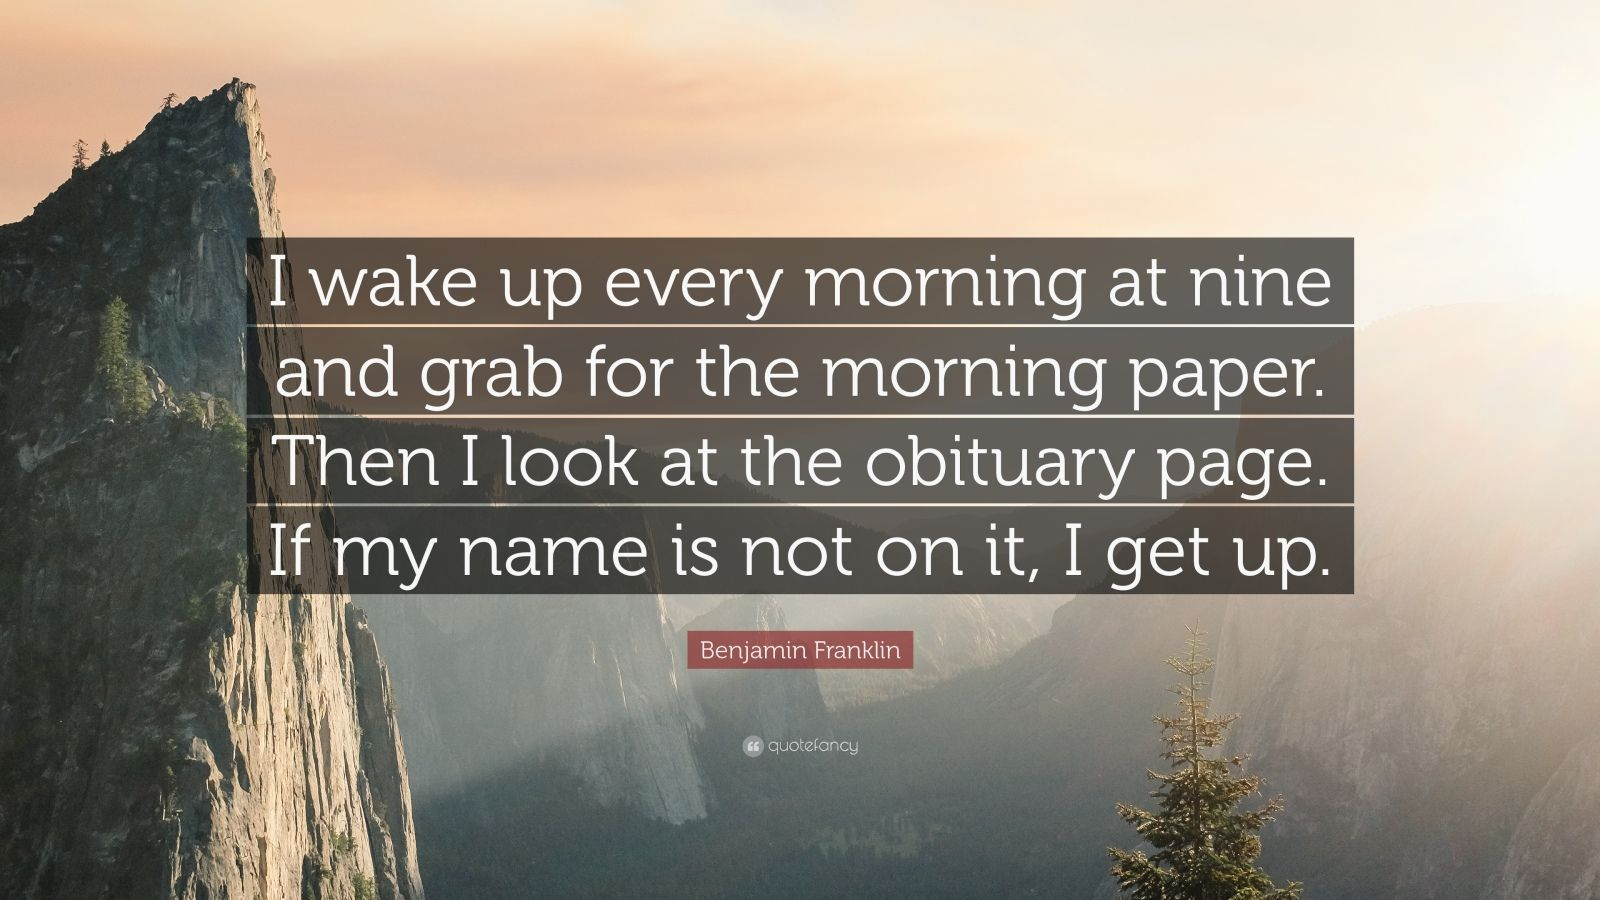 Persistence Quotes Wallpapers Benjamin Franklin Quote I Wake Up Every Morning At Nine